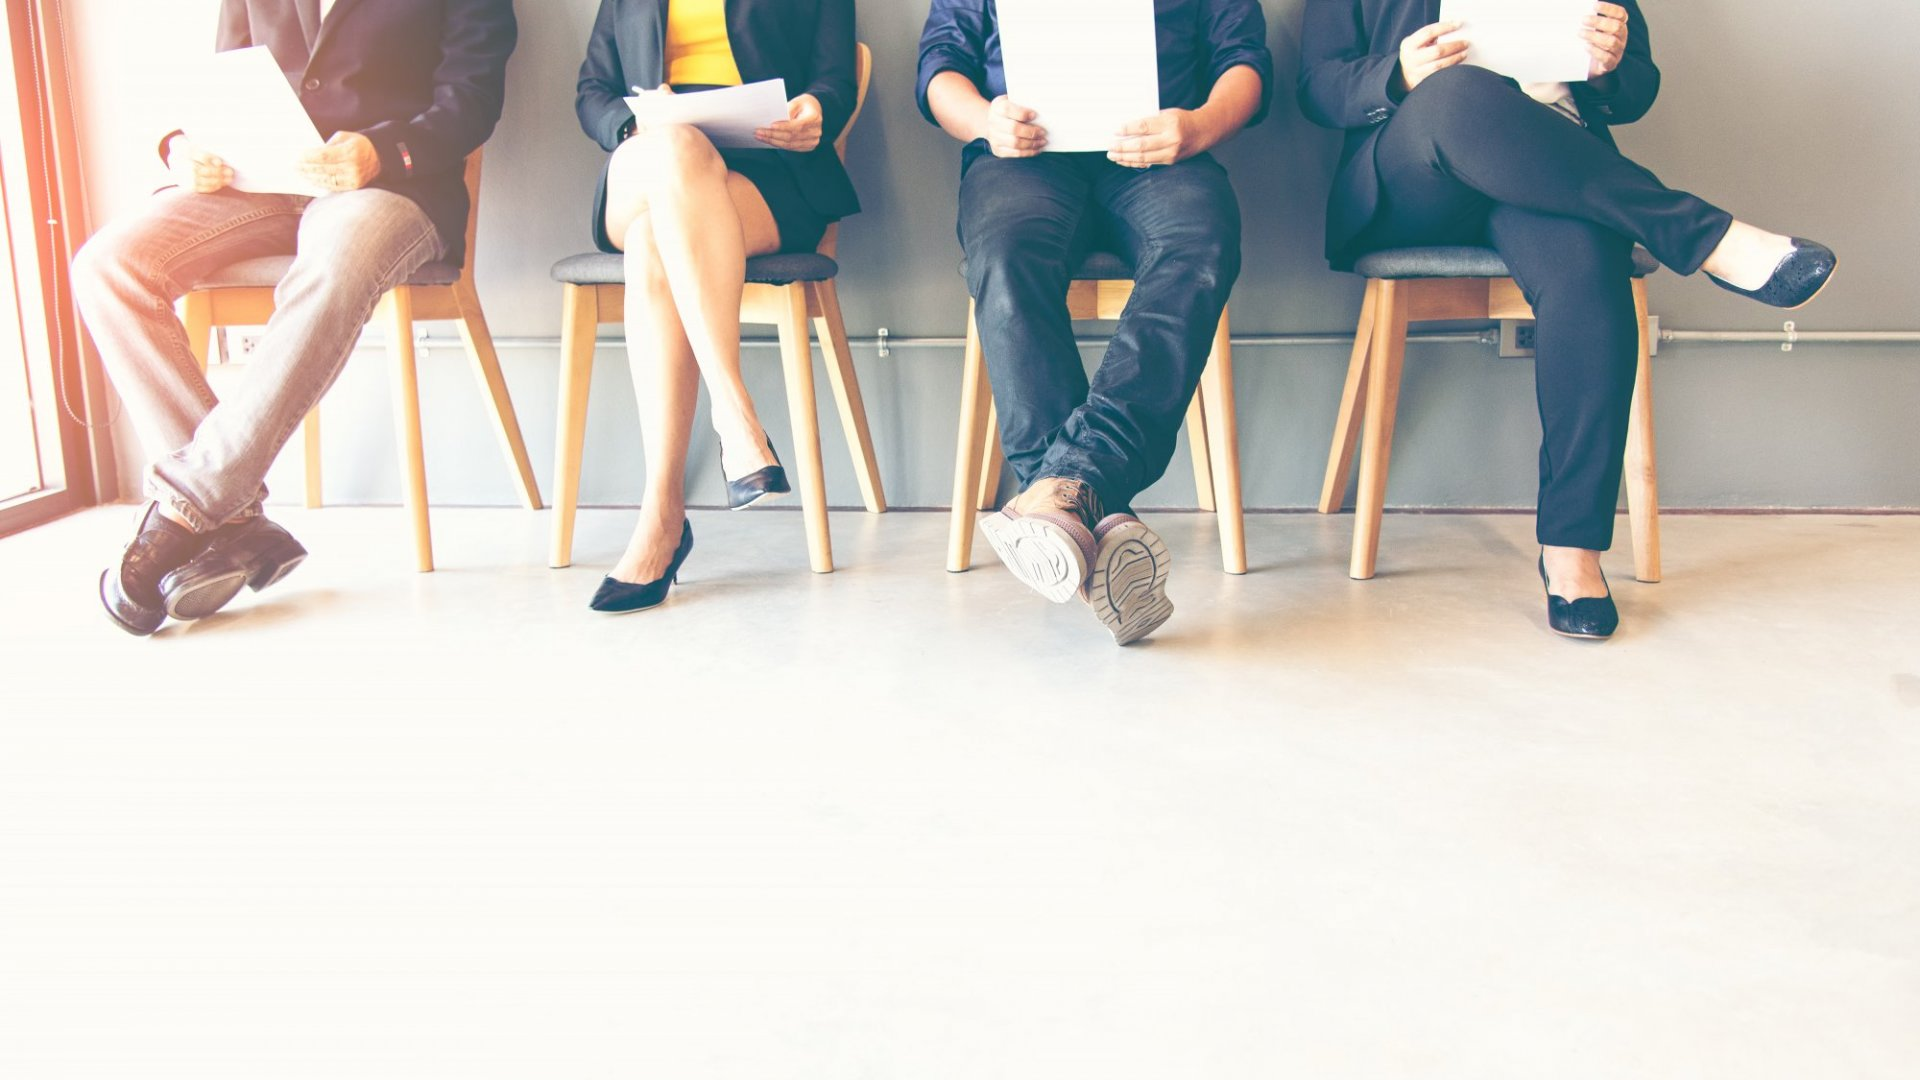 3 Simple Things You Should Always Prepare Before a Job Interview If You Want to Get Hired